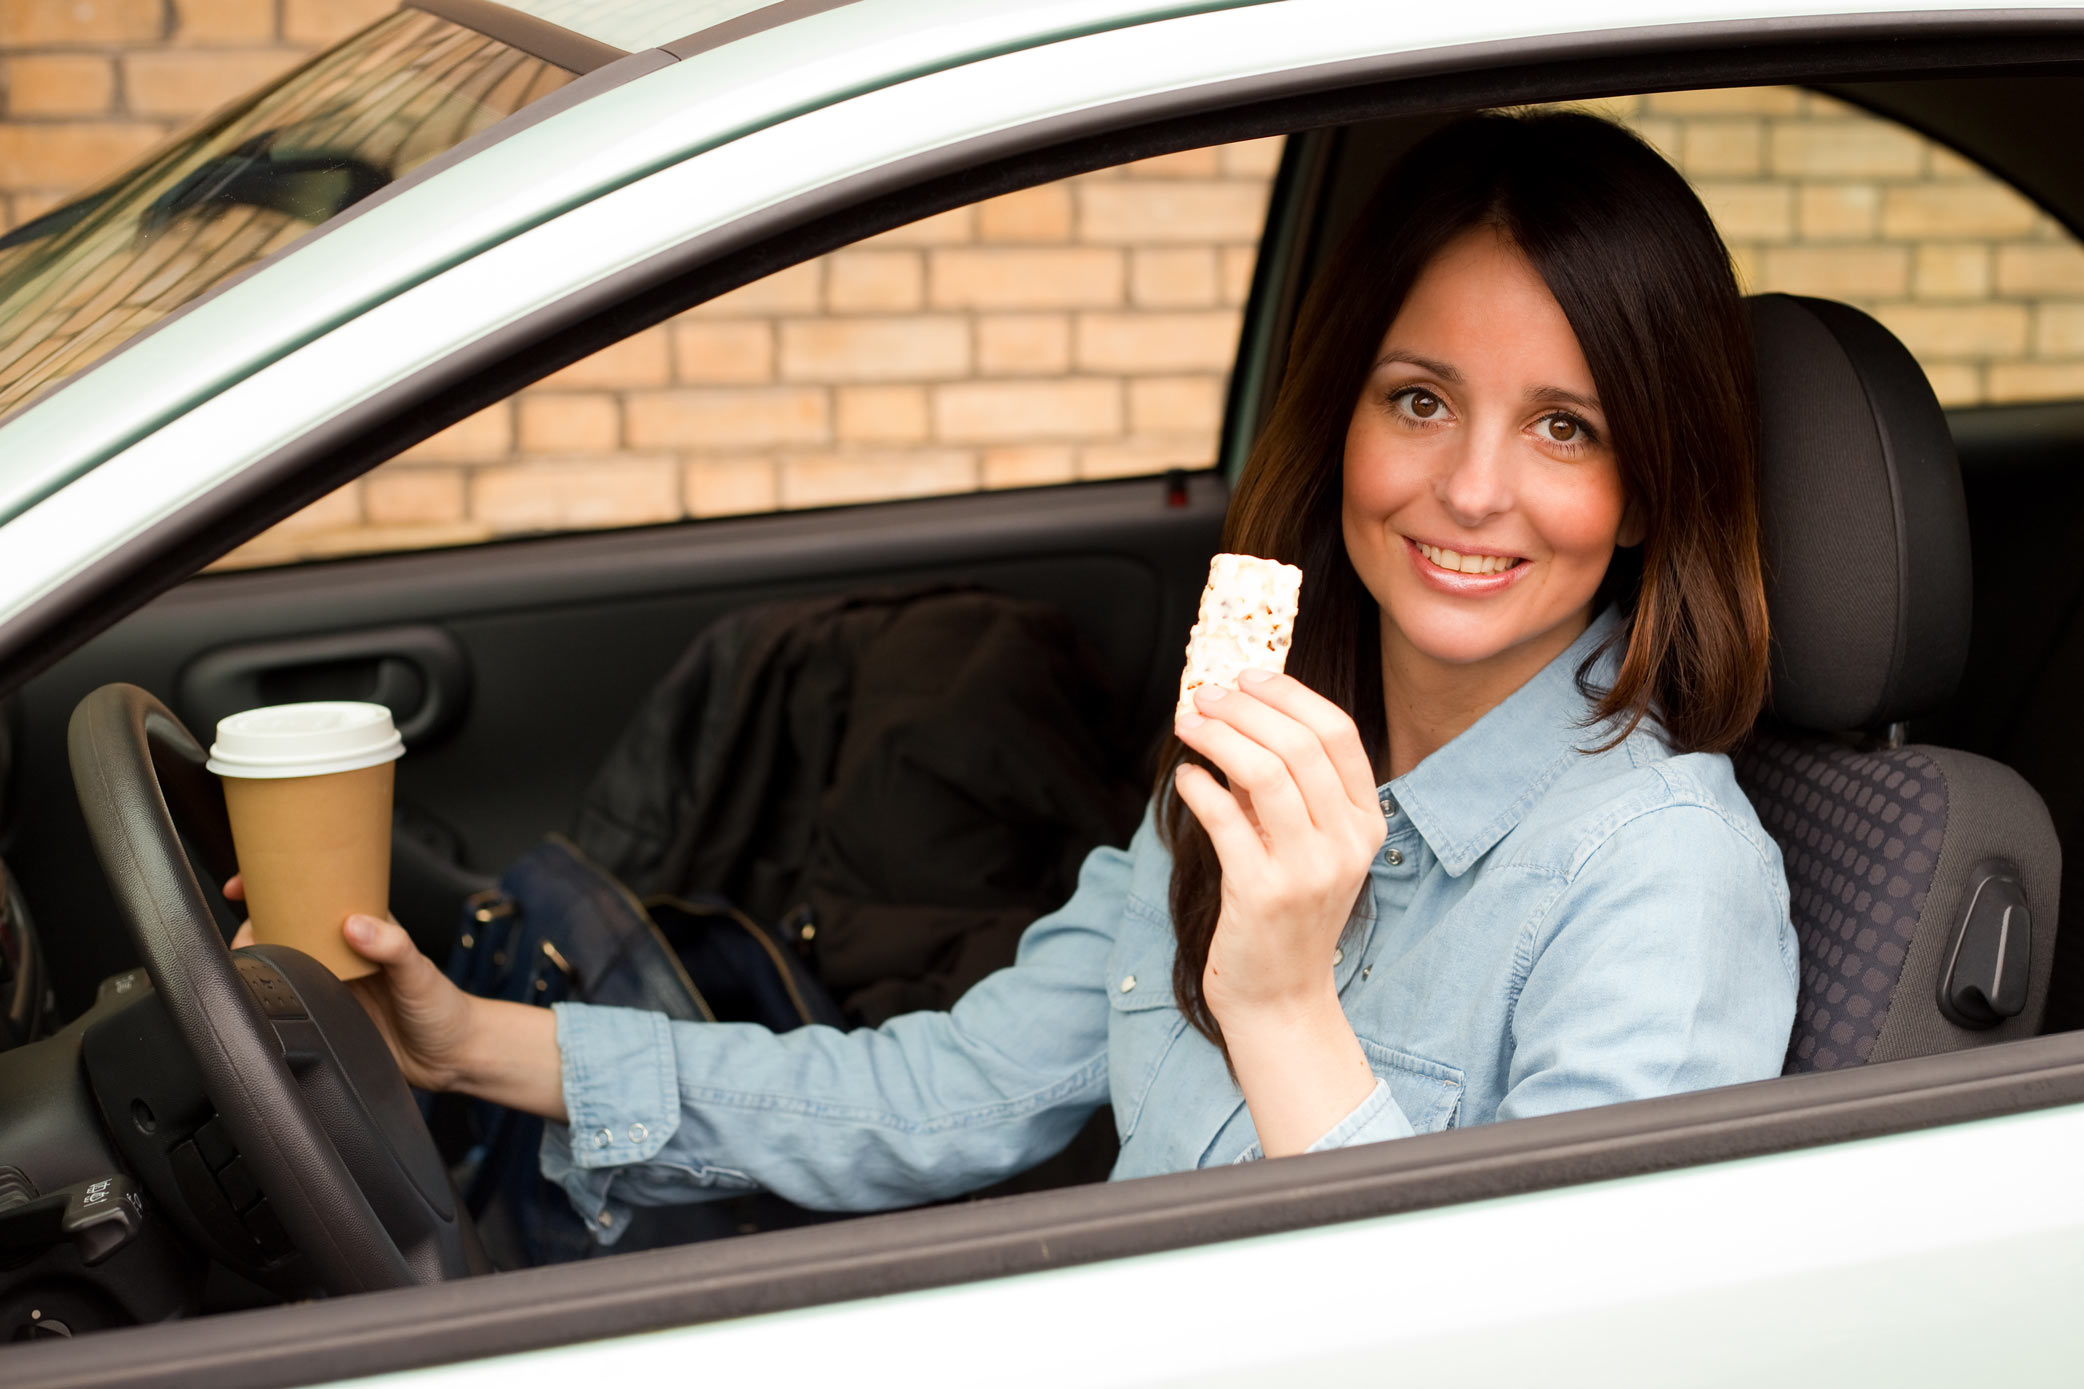 Order online from Fox on the Run for contactless pick-up -- we bring it right to your car!